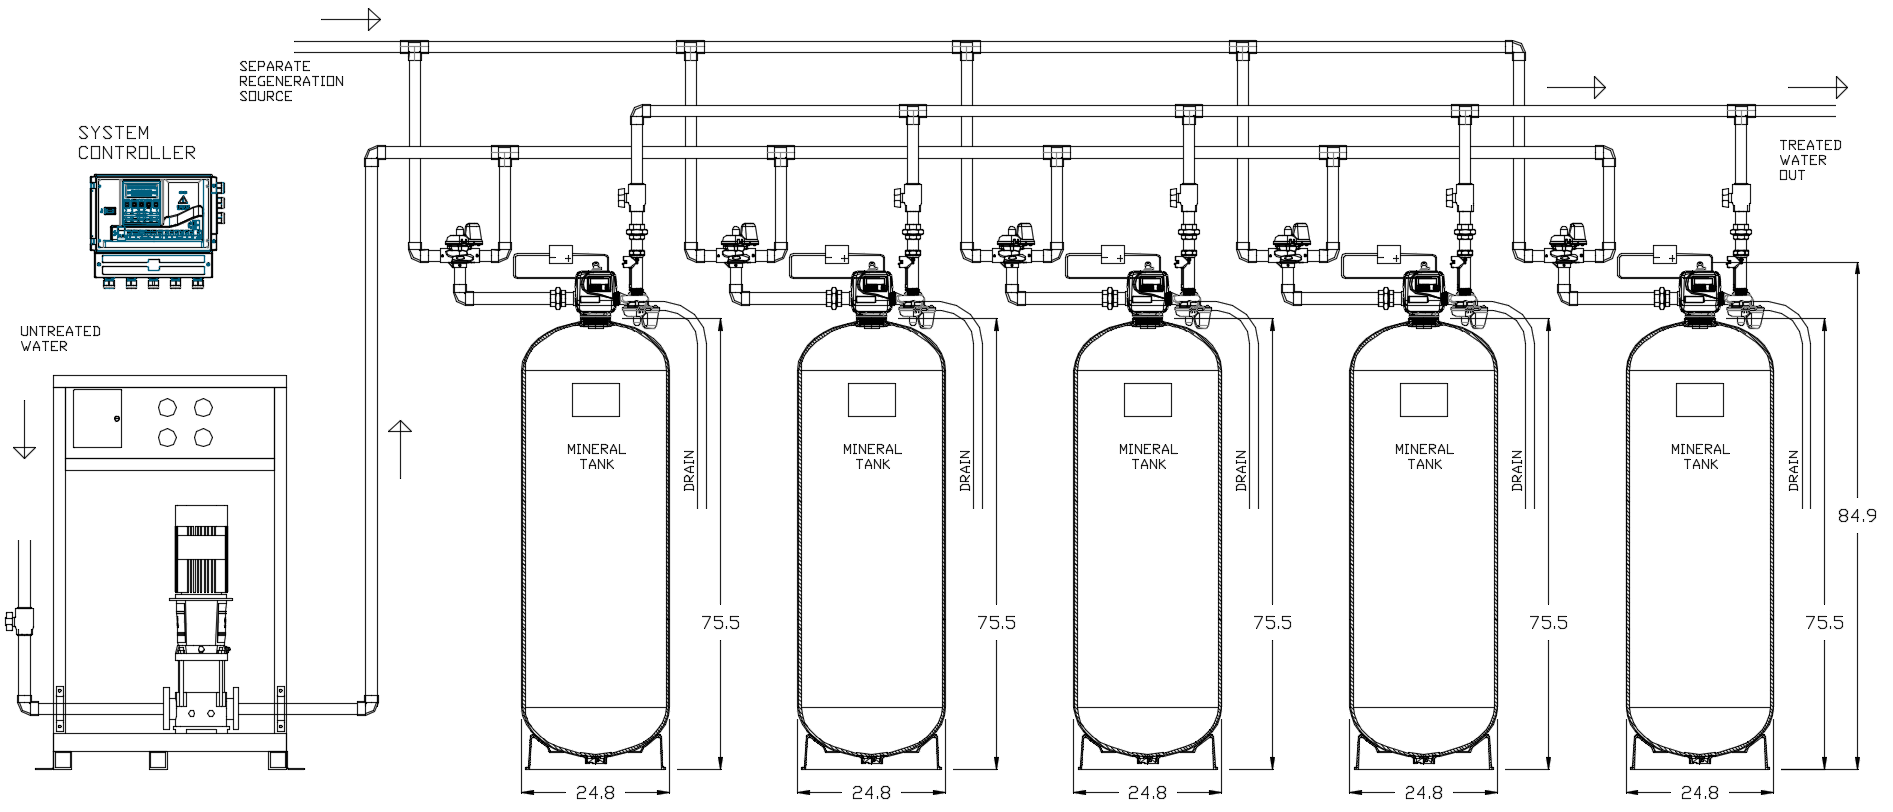 Controlled Regeneration Cooling Tower Side Stream 5-Micron Fiveplex Filter System